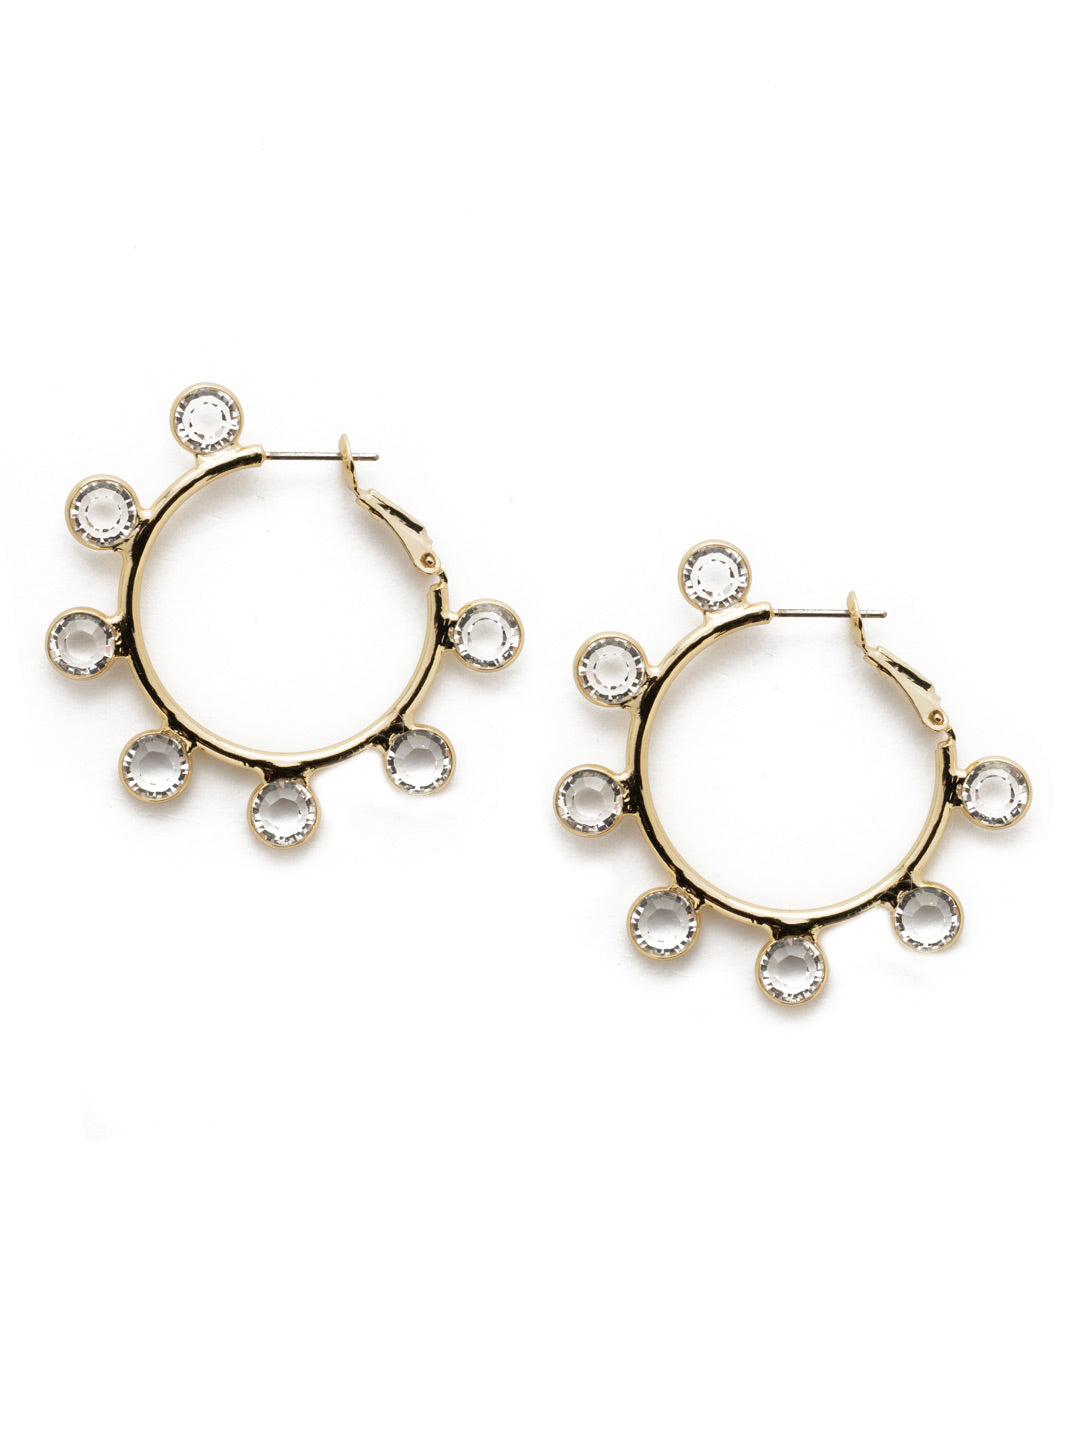 Esmerelda Crystal Hoop Earrings - 4EEK31BGCRY